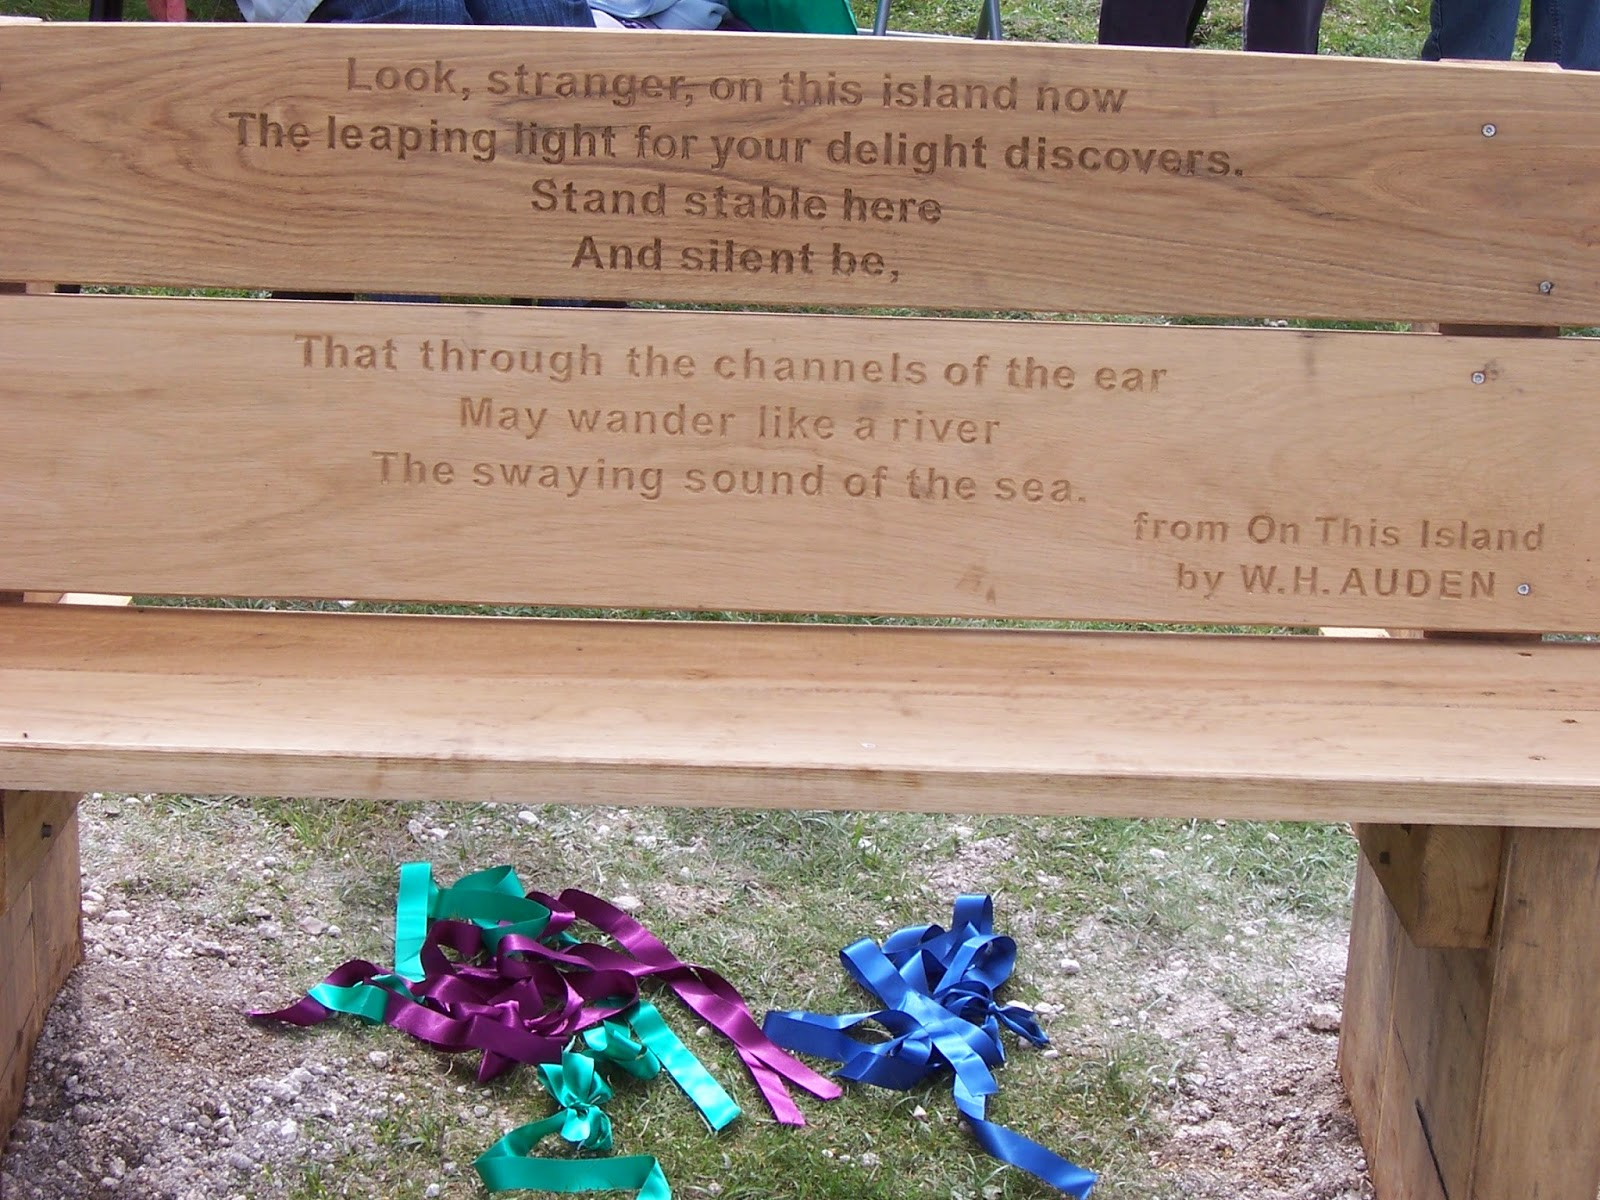 The park bench poem